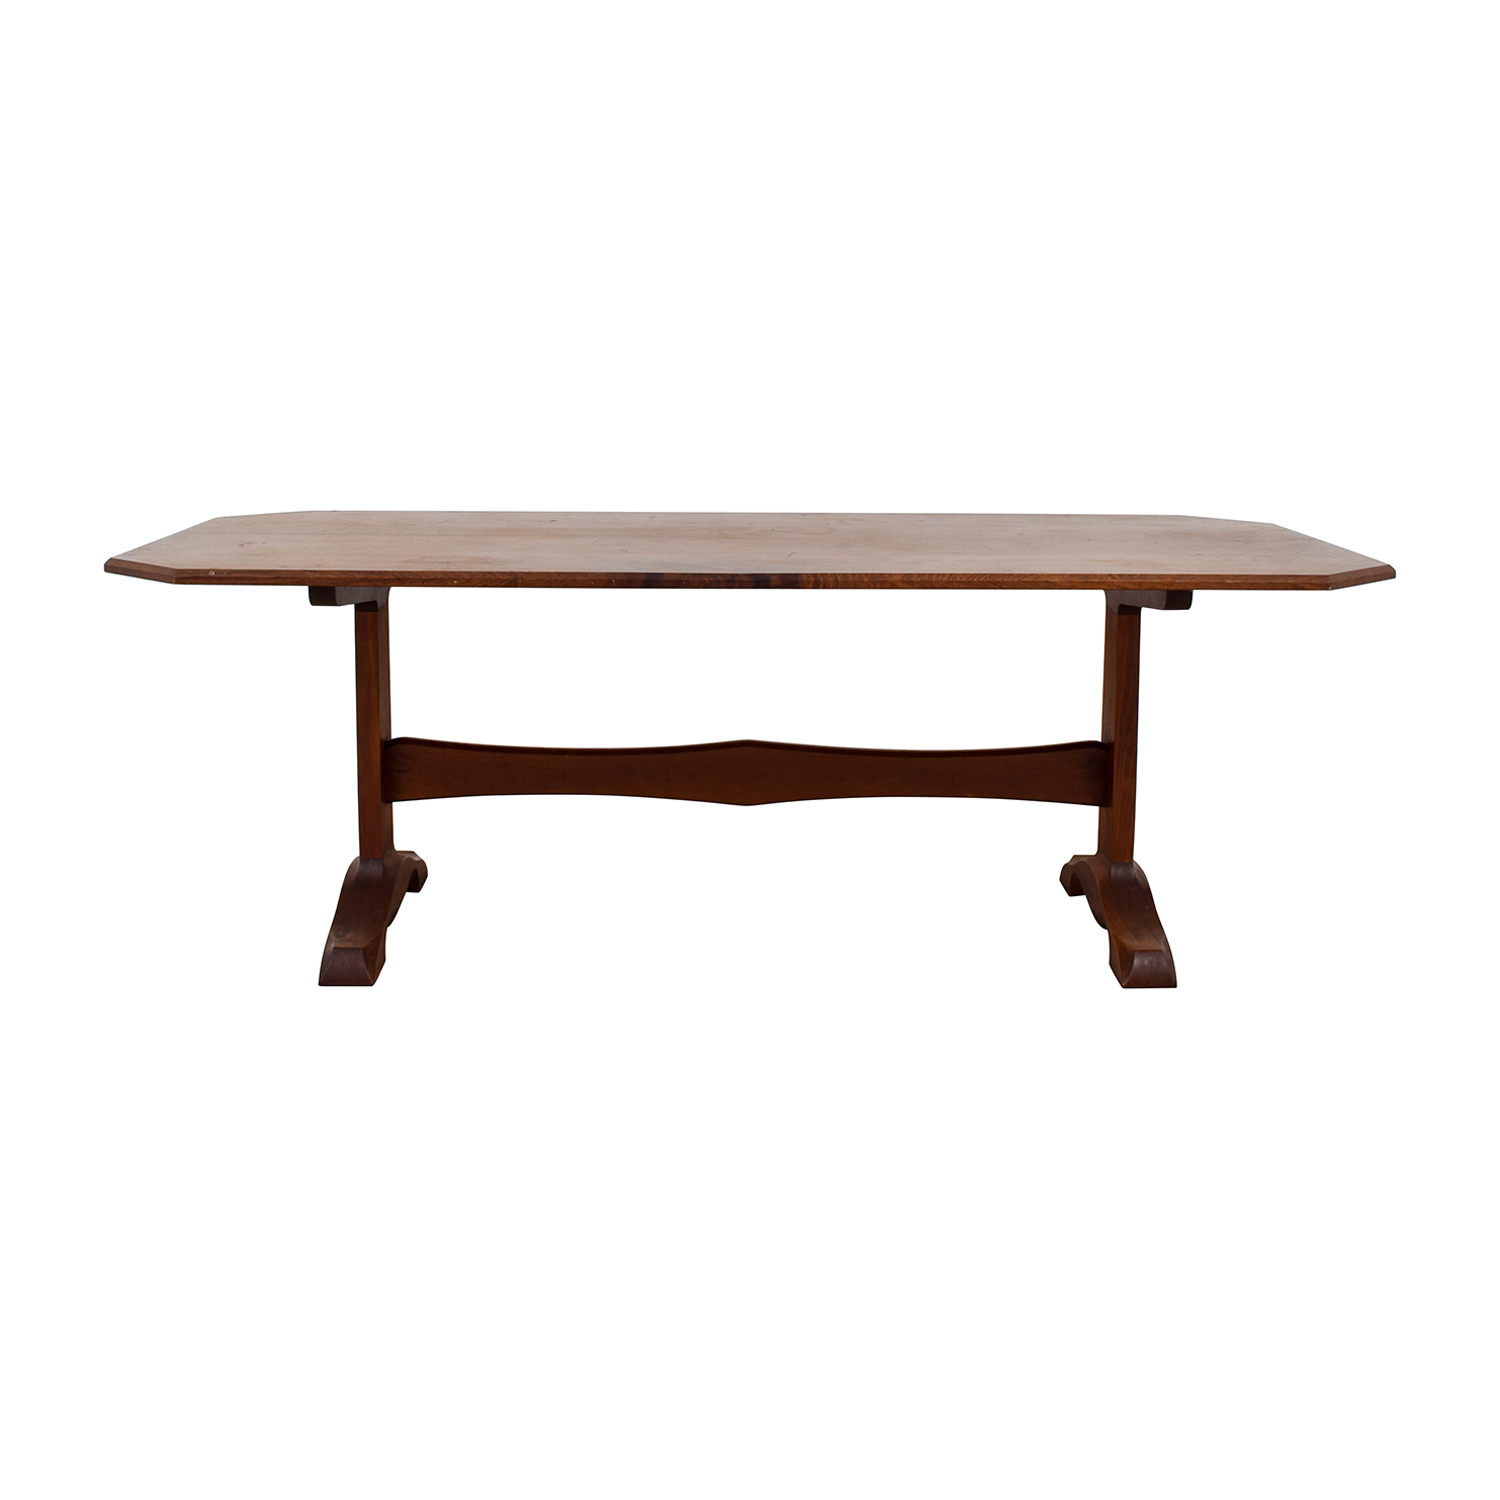 Custom Wood Dining Table second hand